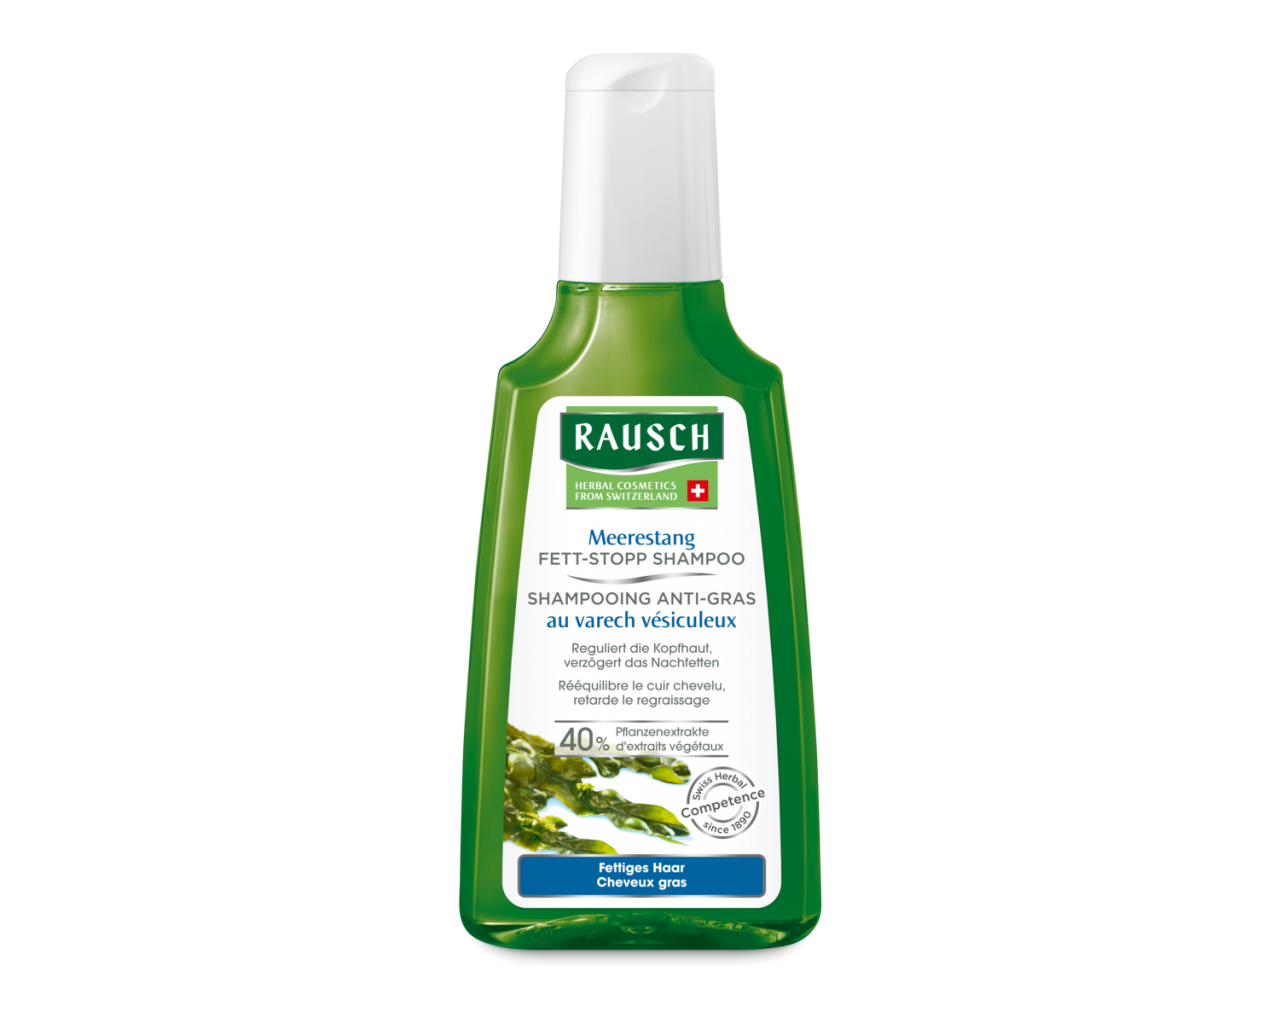 Rausch Seaweed Degreasing Shampoo For Greasy Hair 200mL